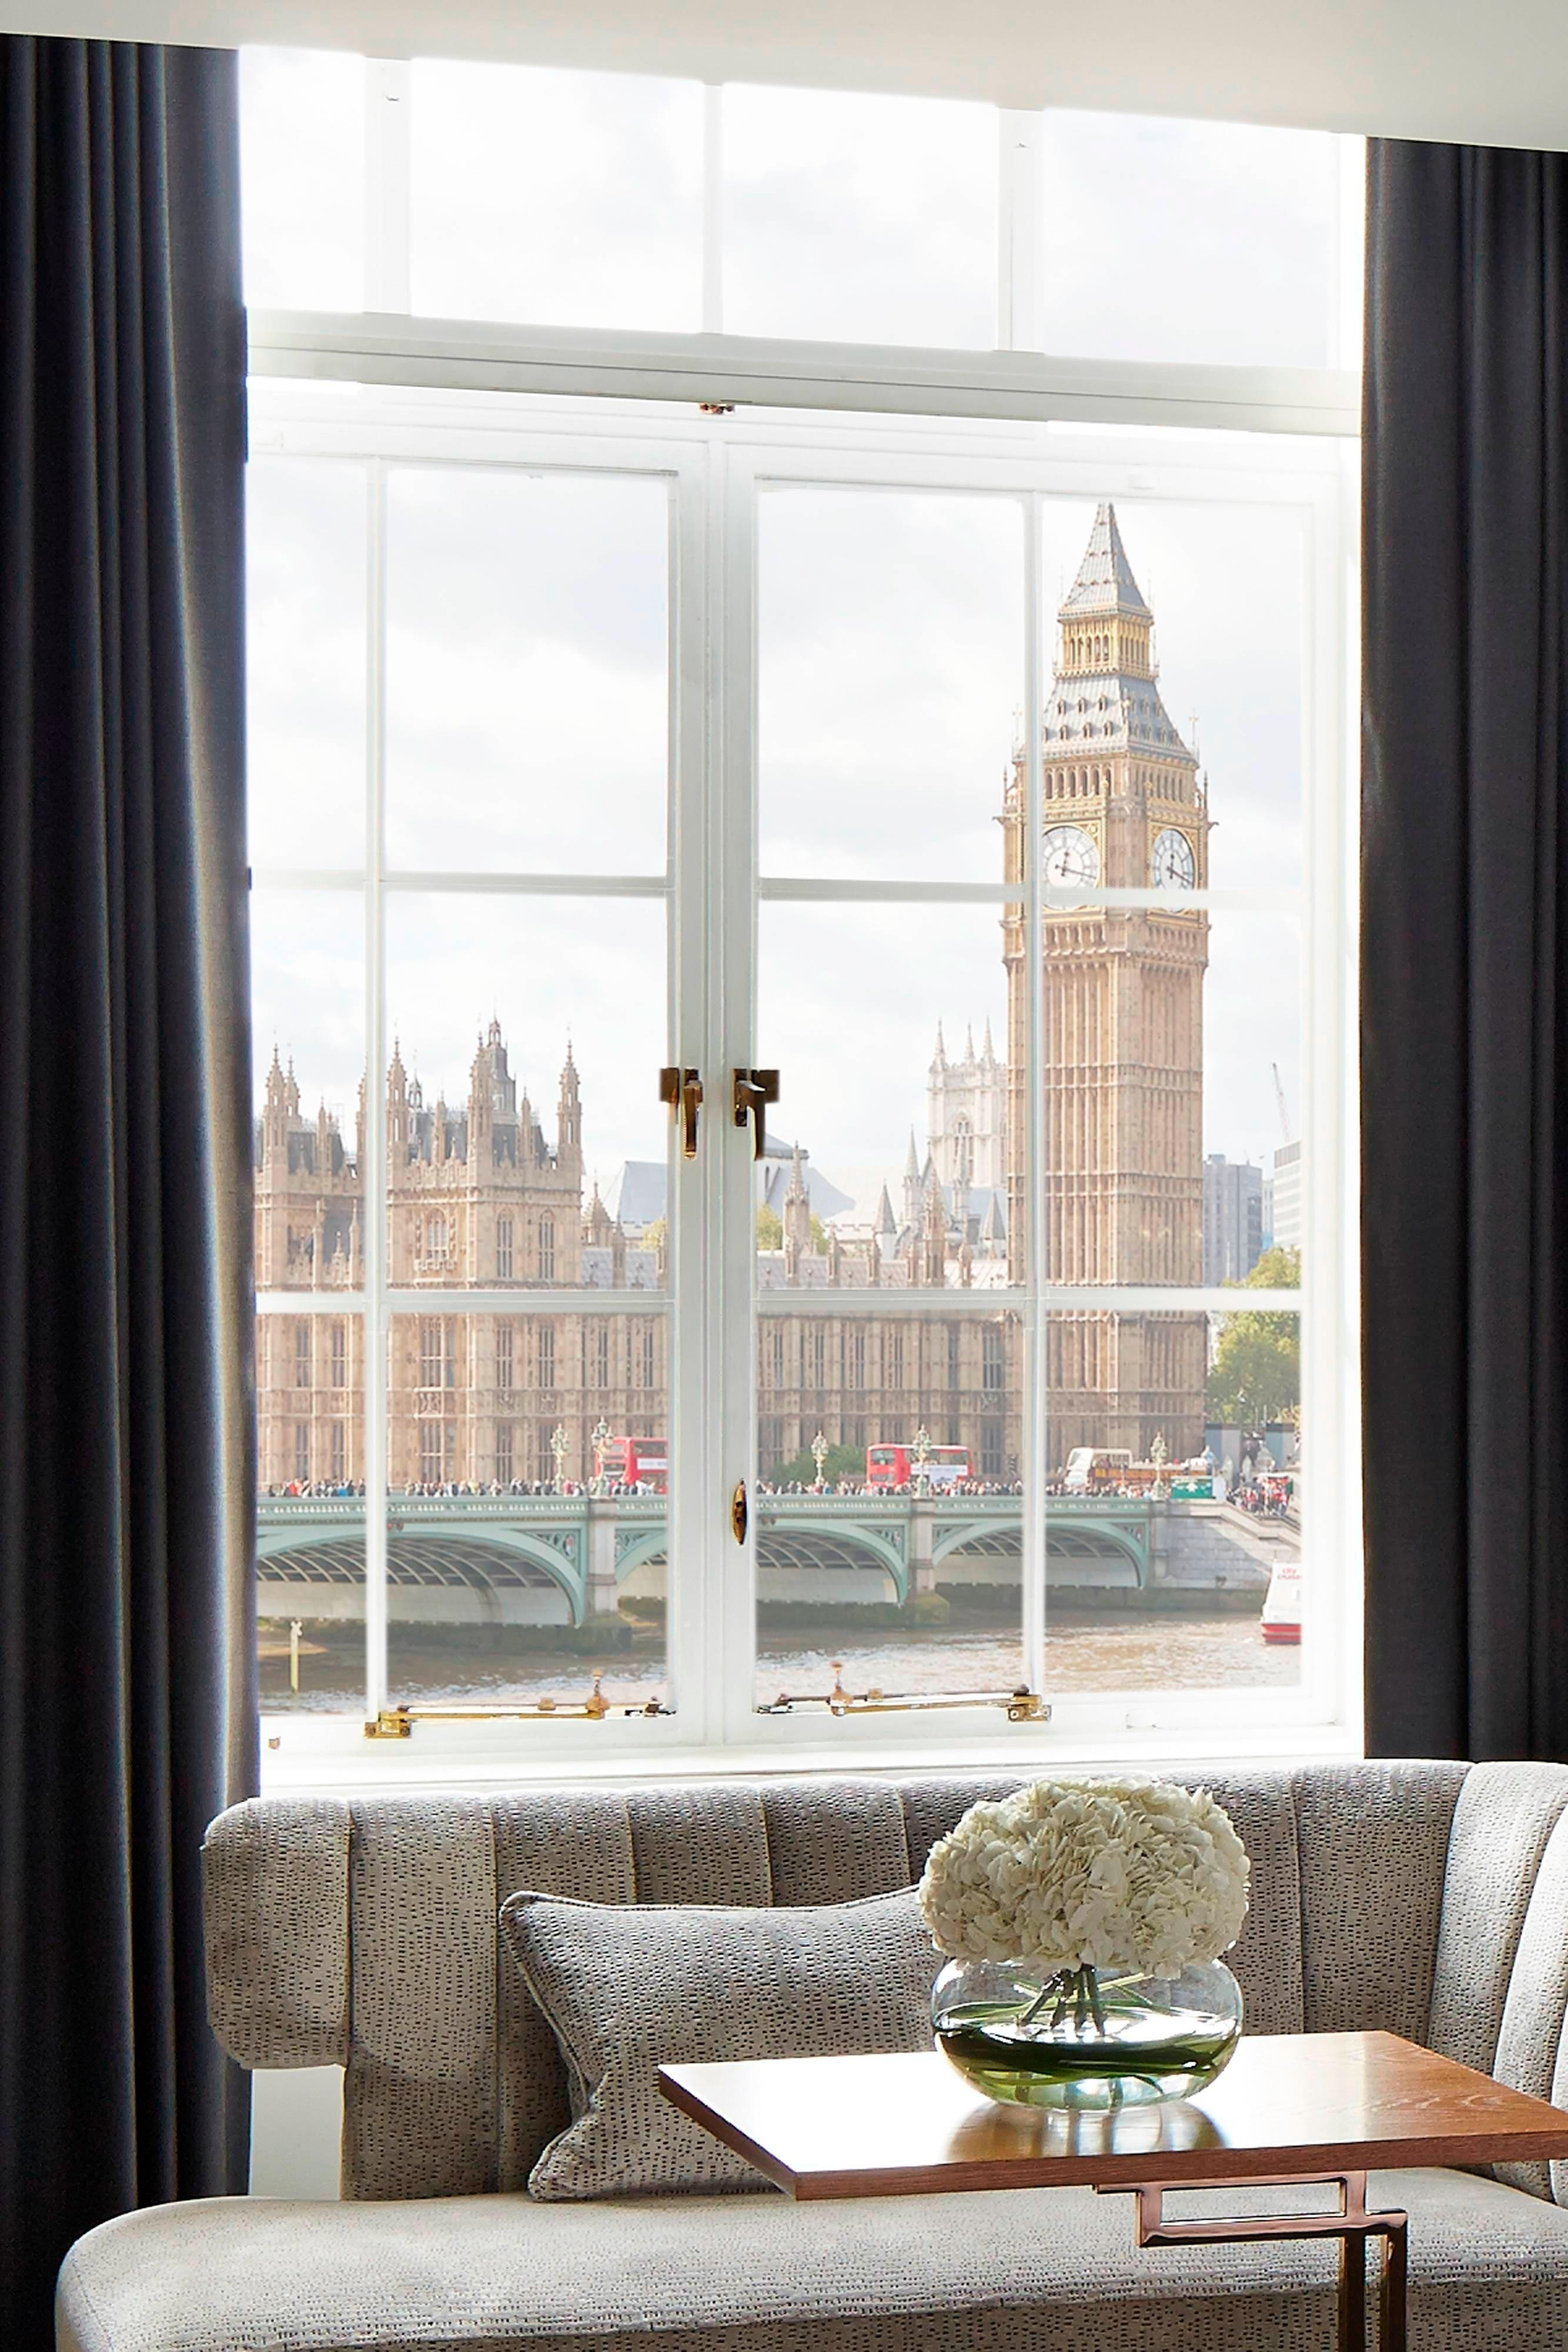 Executive-Gästezimmer in Londoner Hotel